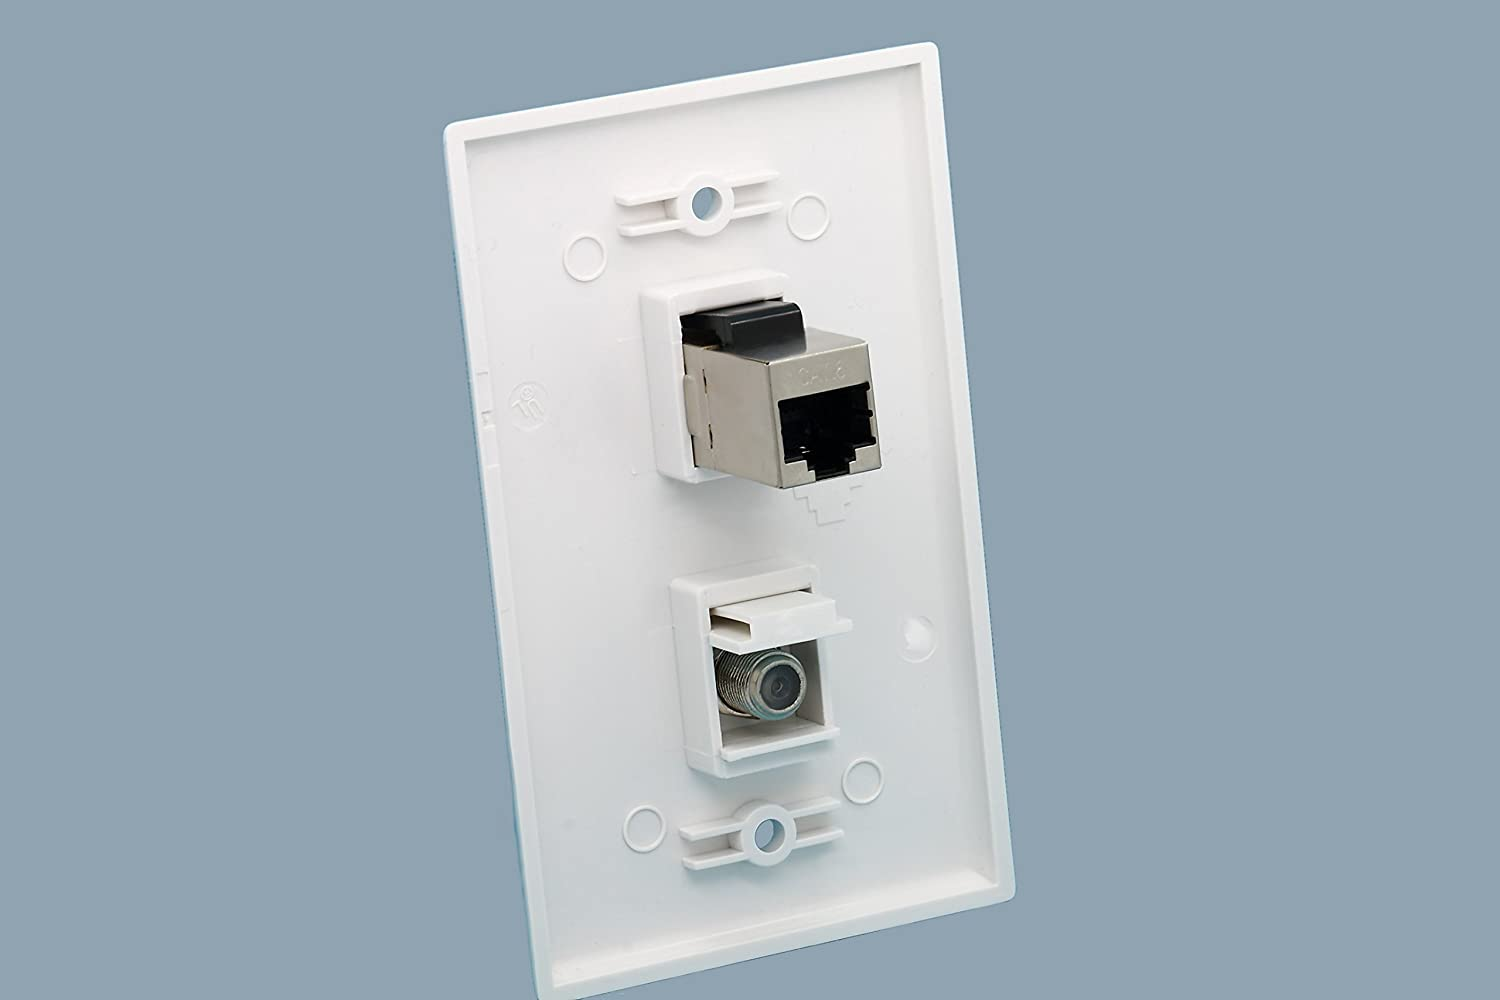 Cable And Ethernet Wall Plate Wiring | Repair Wiring Scheme